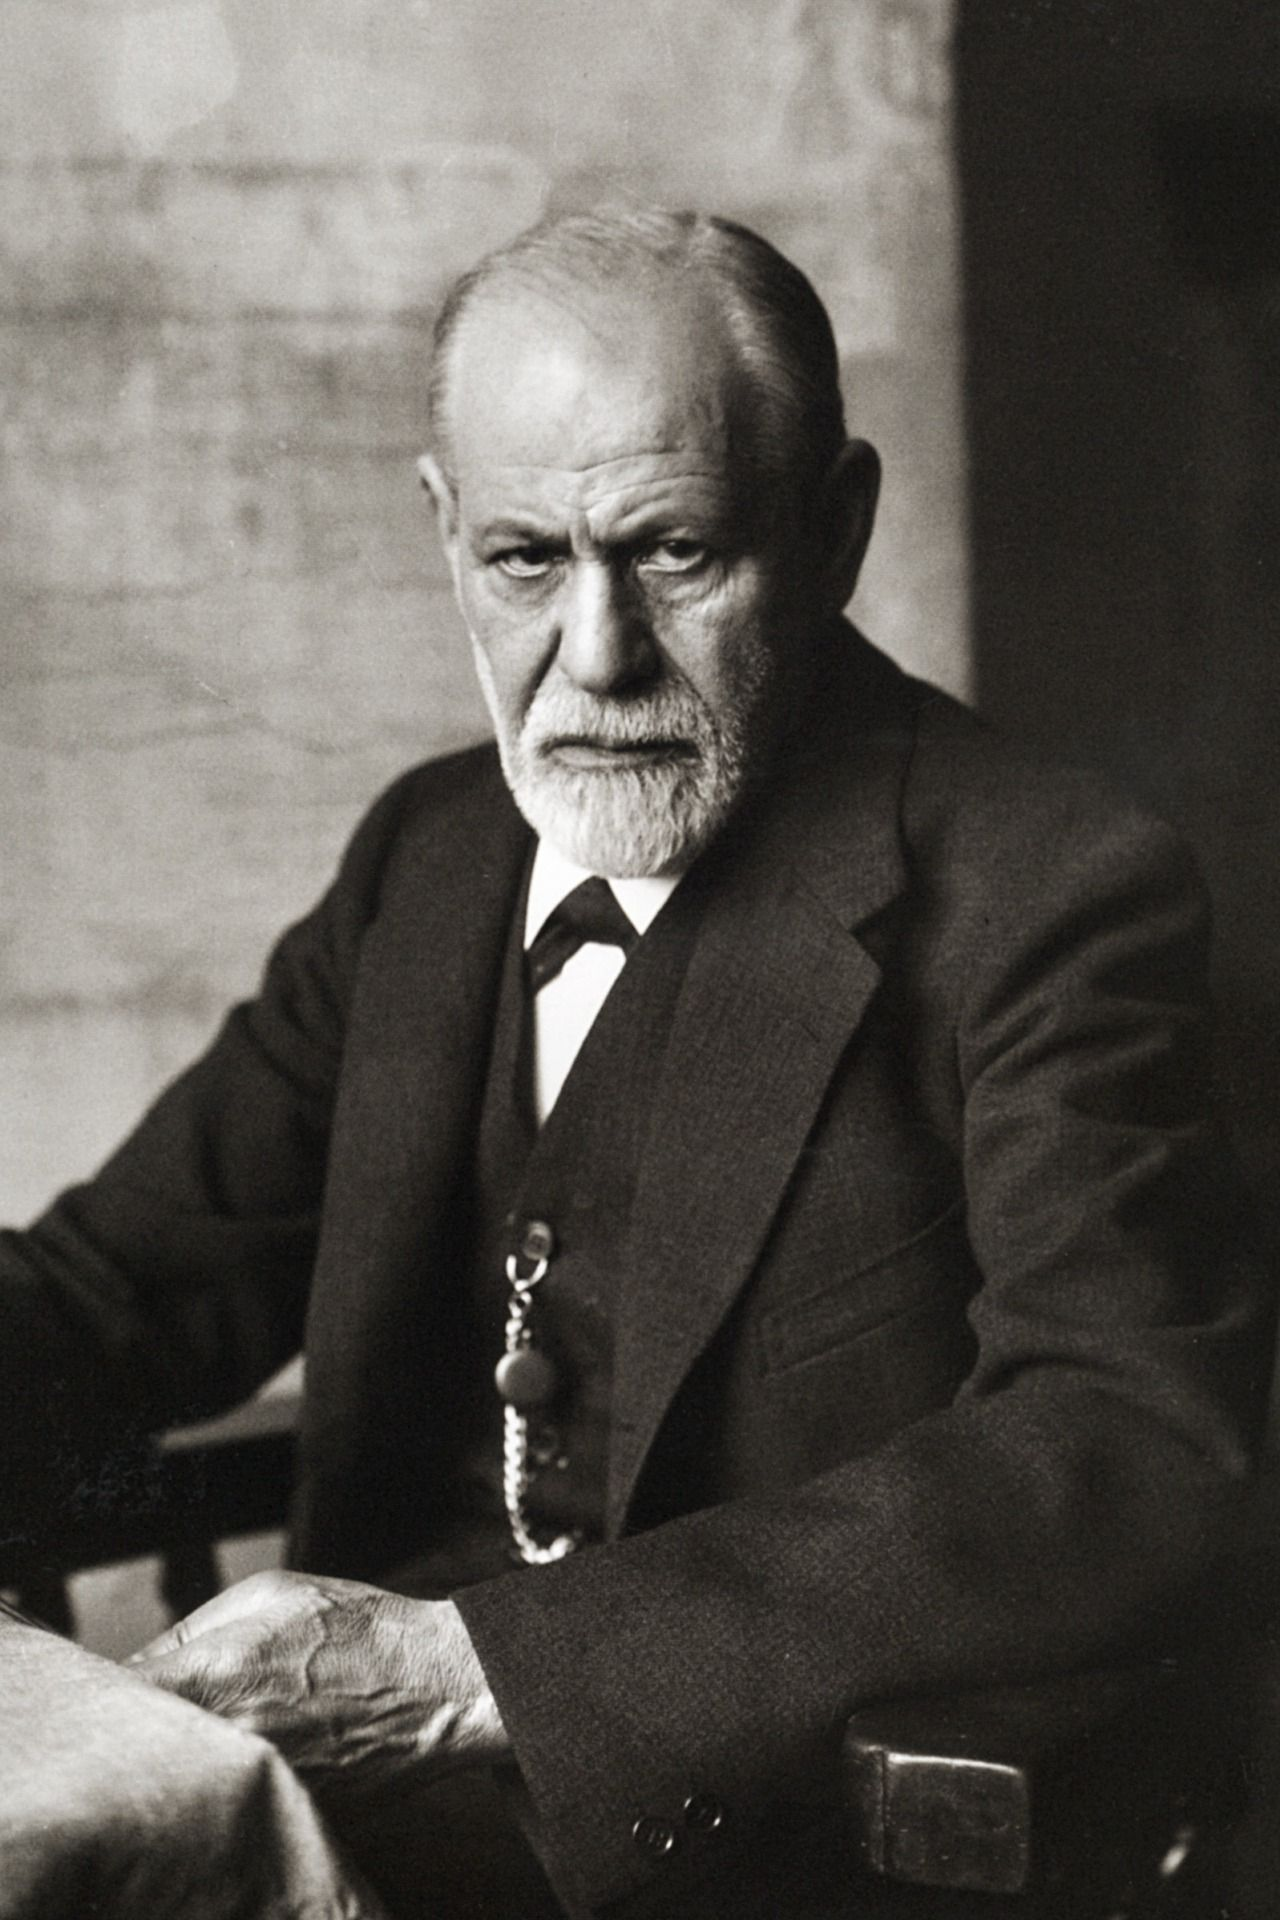 /the-freud-trilogy-in-the-new-remote-work-world-6l19336j feature image